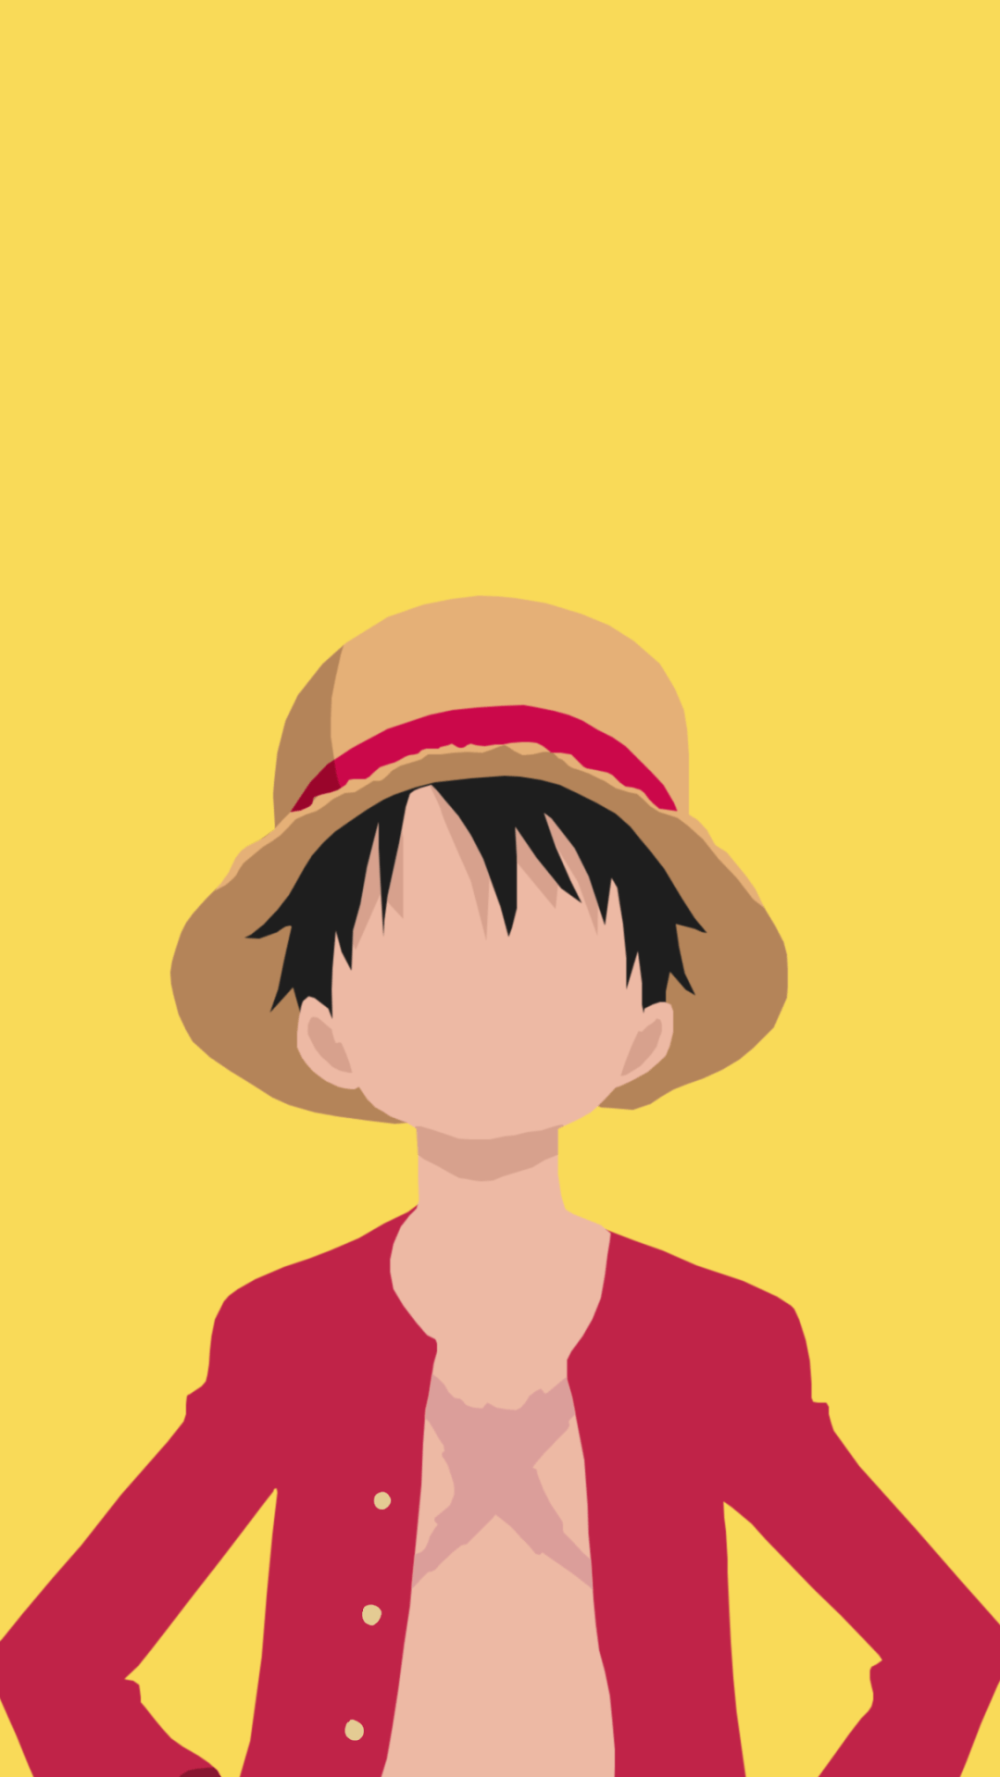 Home Screen Iphone Luffy One Piece Wallpaper Doraemon In 2020 One Piece Wallpaper Iphone Anime Wallpaper Iphone Wallpaper